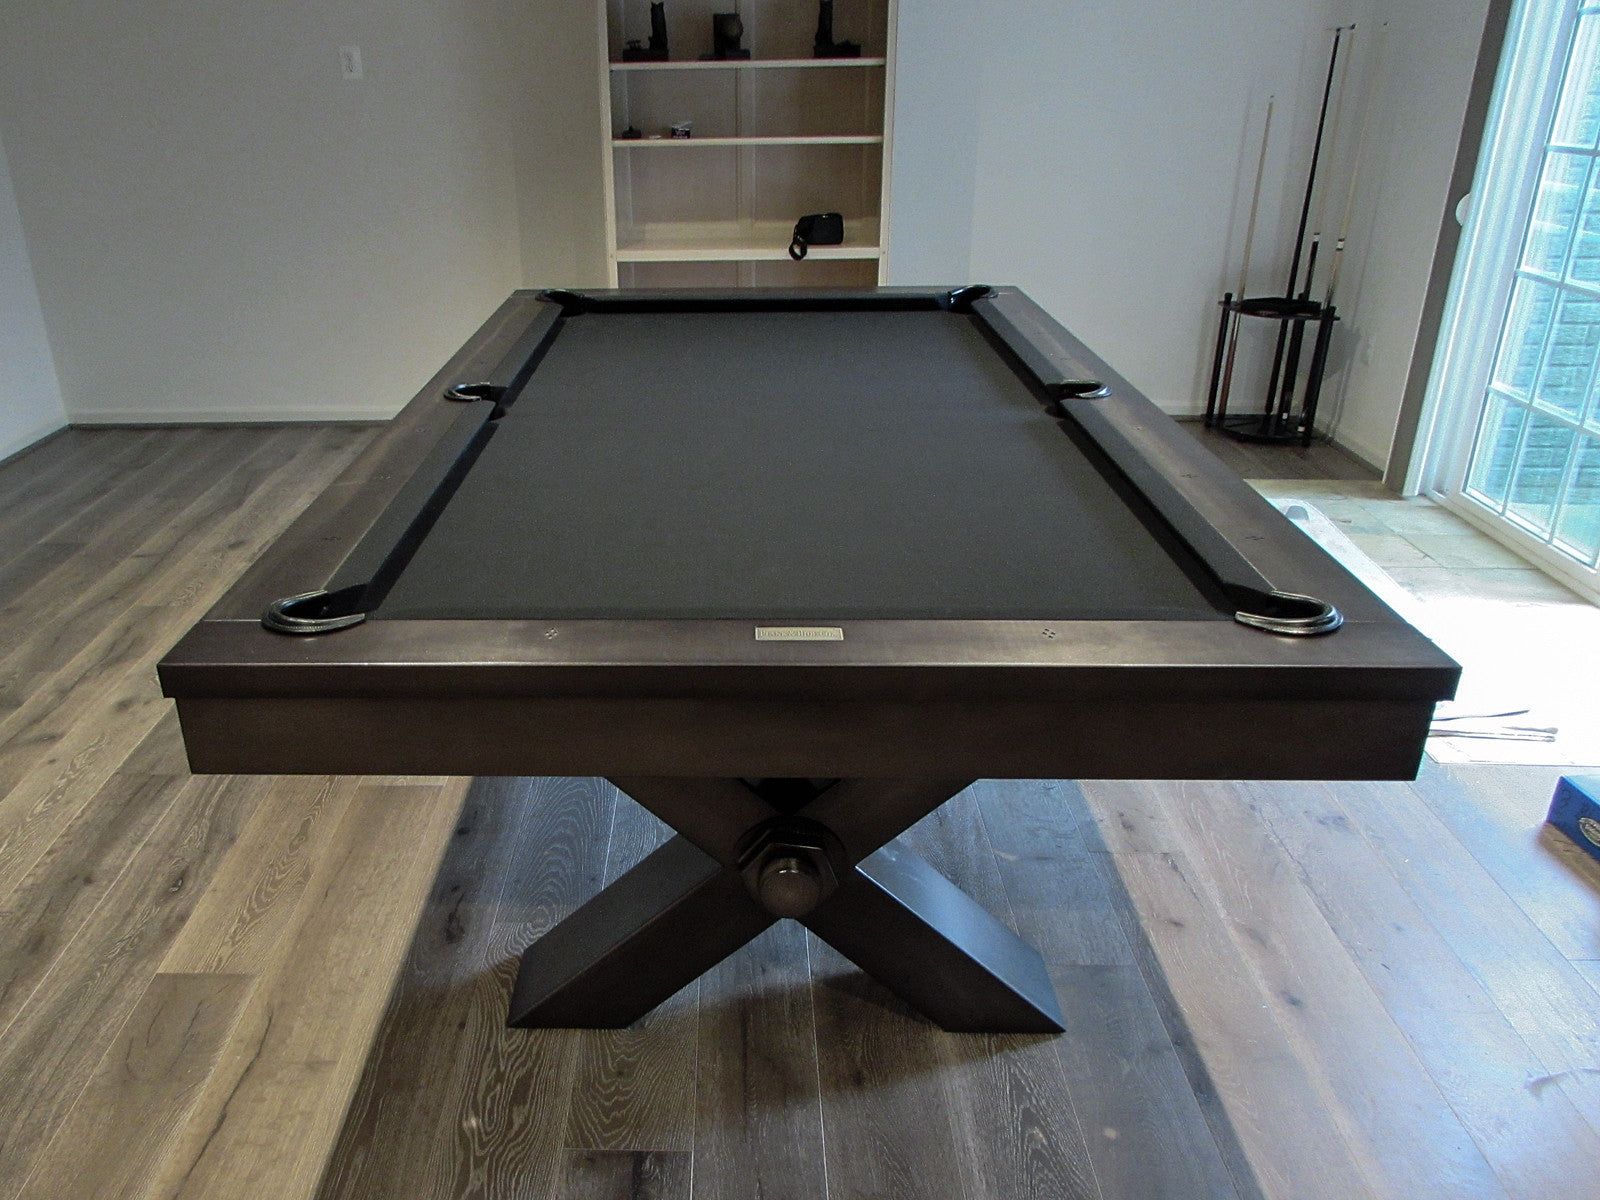 Plank and Hide Vox Pool Table installed in Rockville Maryland